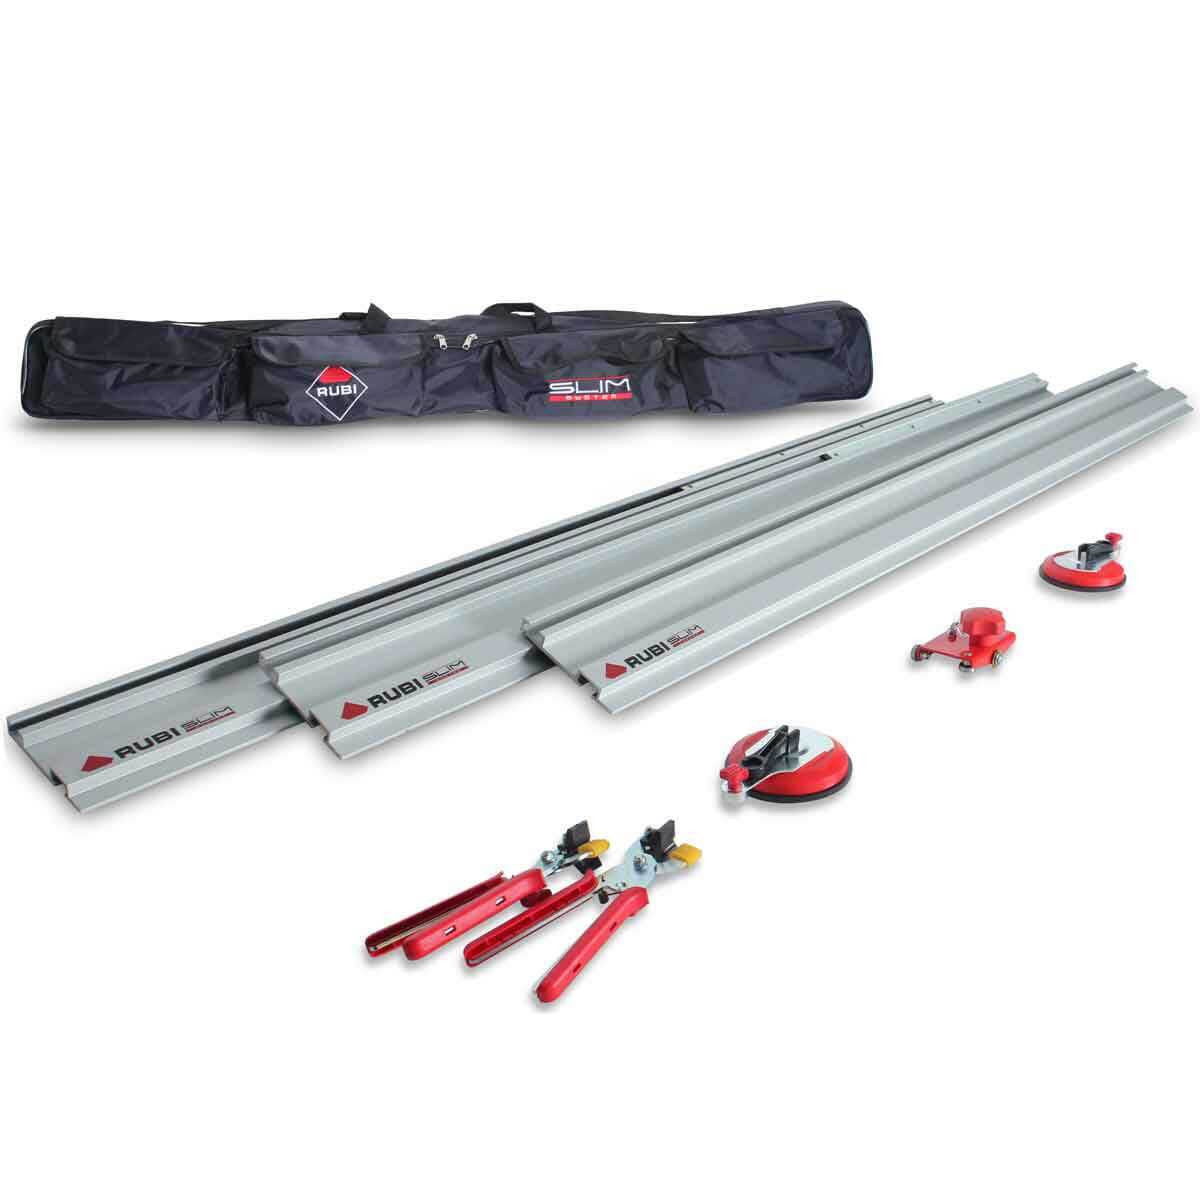 18911 Rubi Slim Cutter 10 ft. Kit